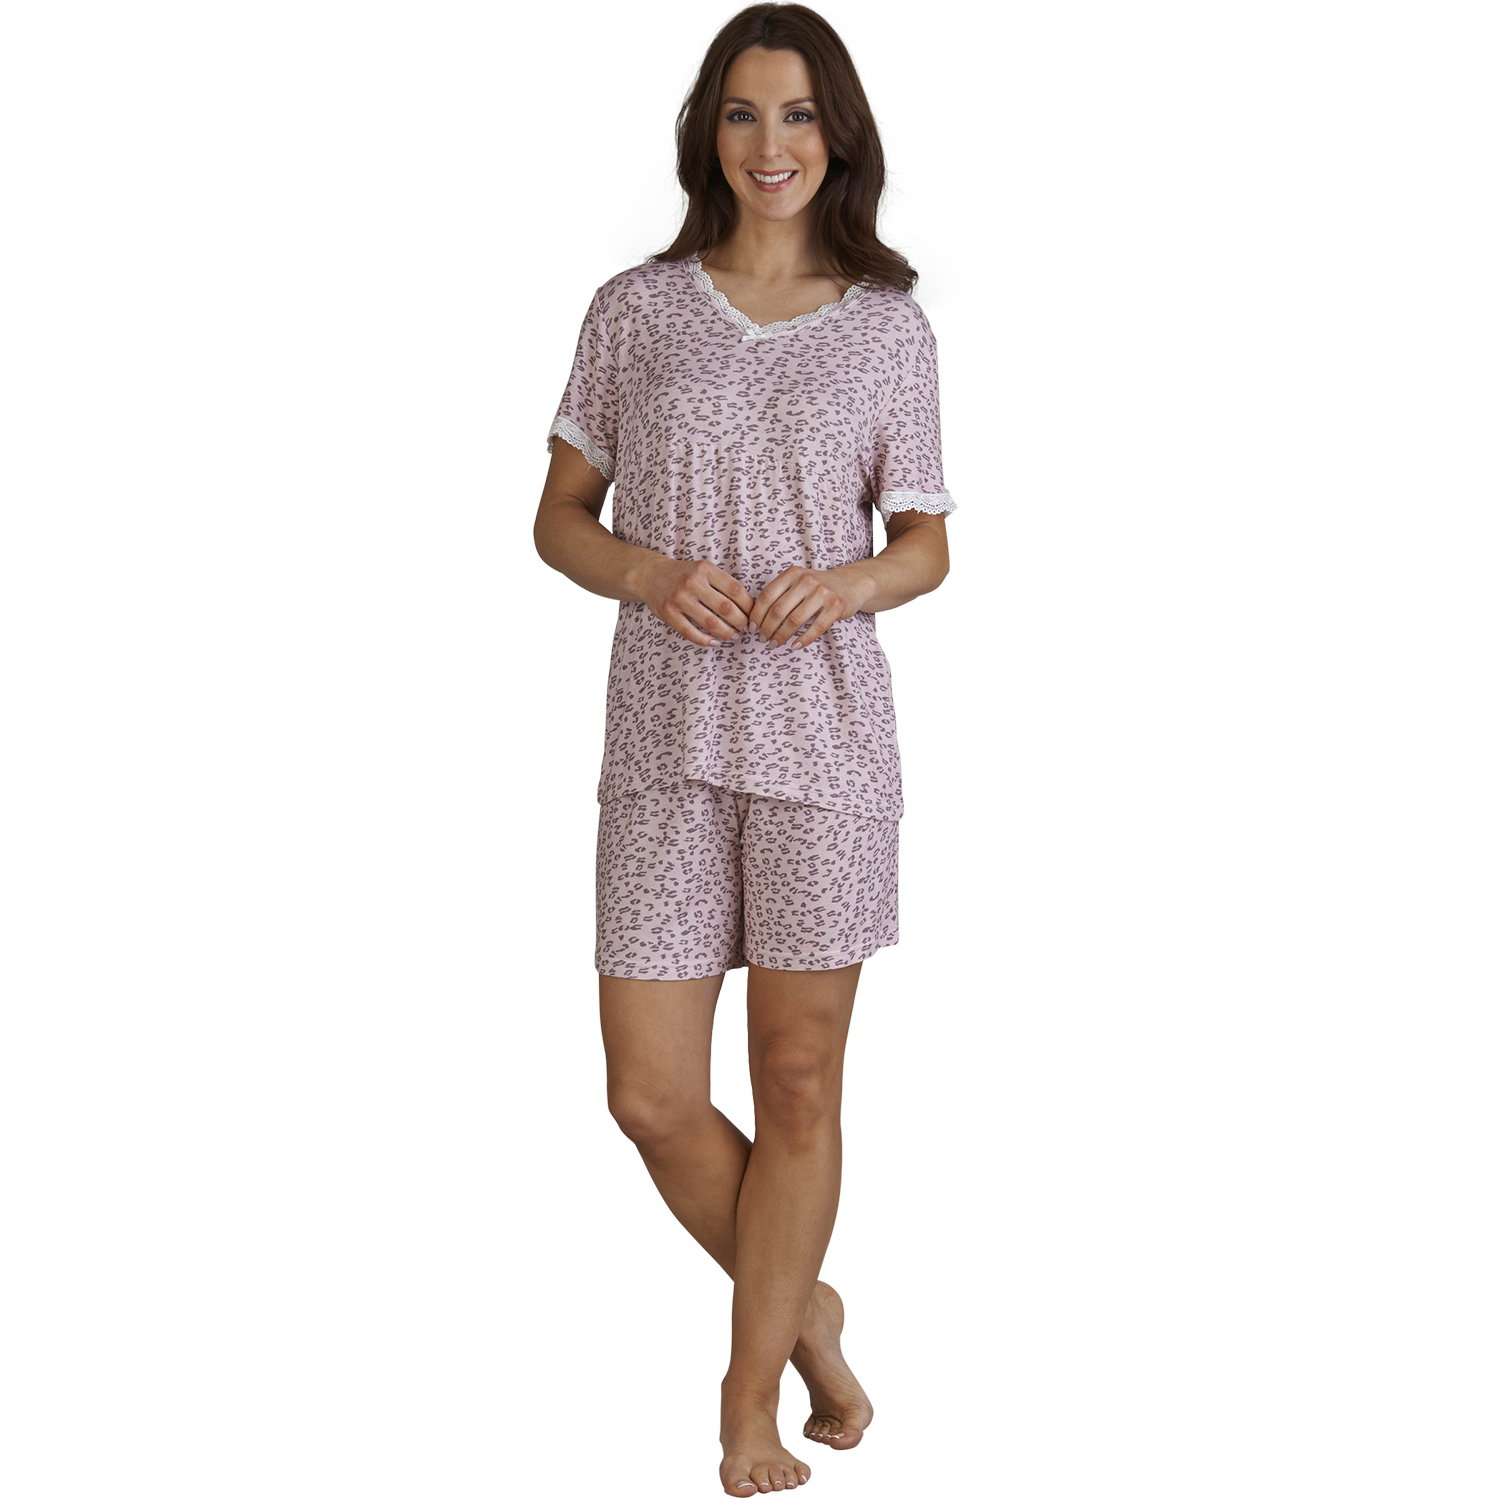 Buy Pajamas and Robes at Macy's and get FREE SHIPPING with $99 purchase! Great selection of night gowns, pajamas and other sleepwear for women. Macy's Presents: Look for a lightweight cotton pajama top and pajama shorts that will make getting ready for bed a cinch. All Pajamas, Robes & Loungewear. Narrow by Sleepwear Type. Nightgowns.